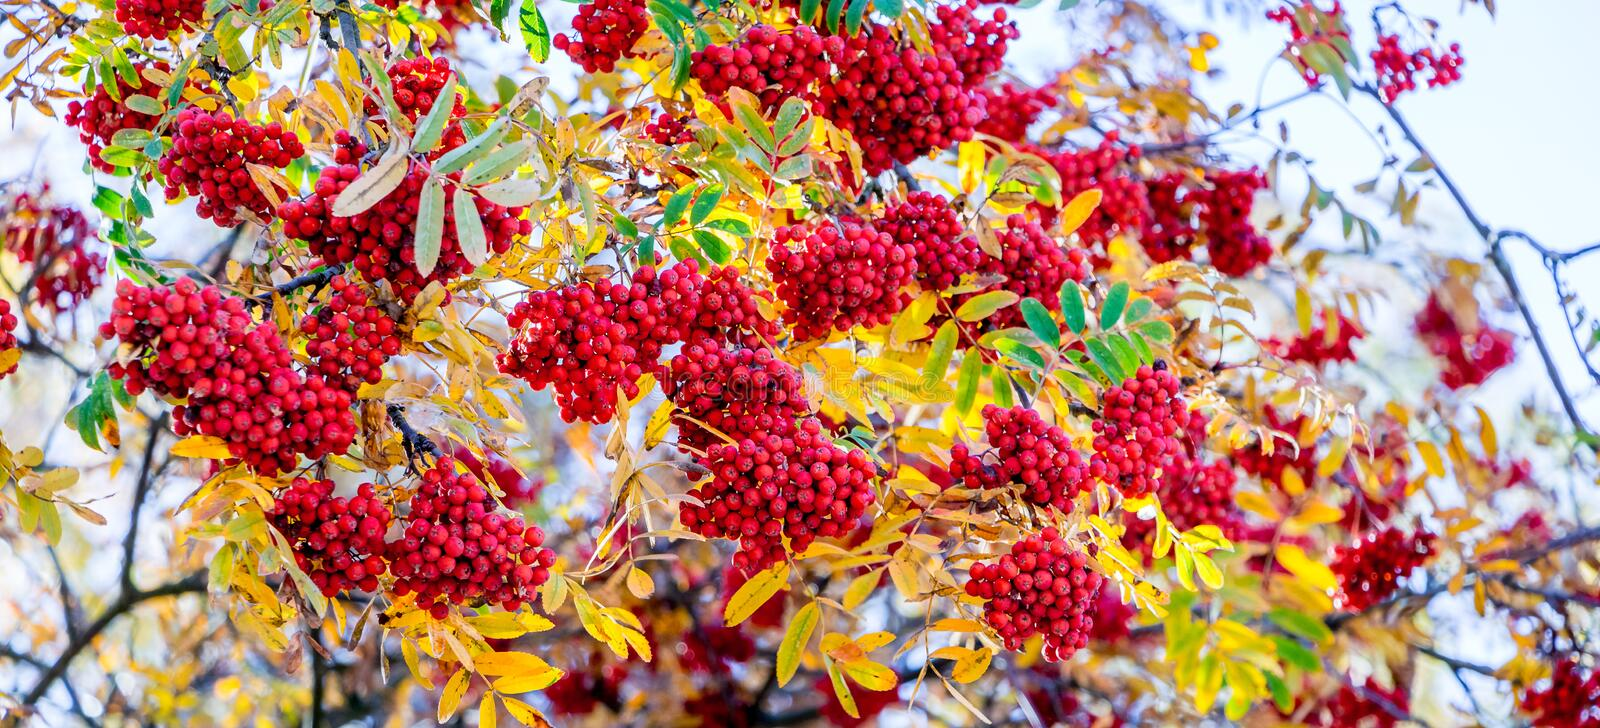 Red bunches of mountain ash on a tree among yellow leaves_. Red bunches of mountain ash on a tree among yellow leaves stock photos